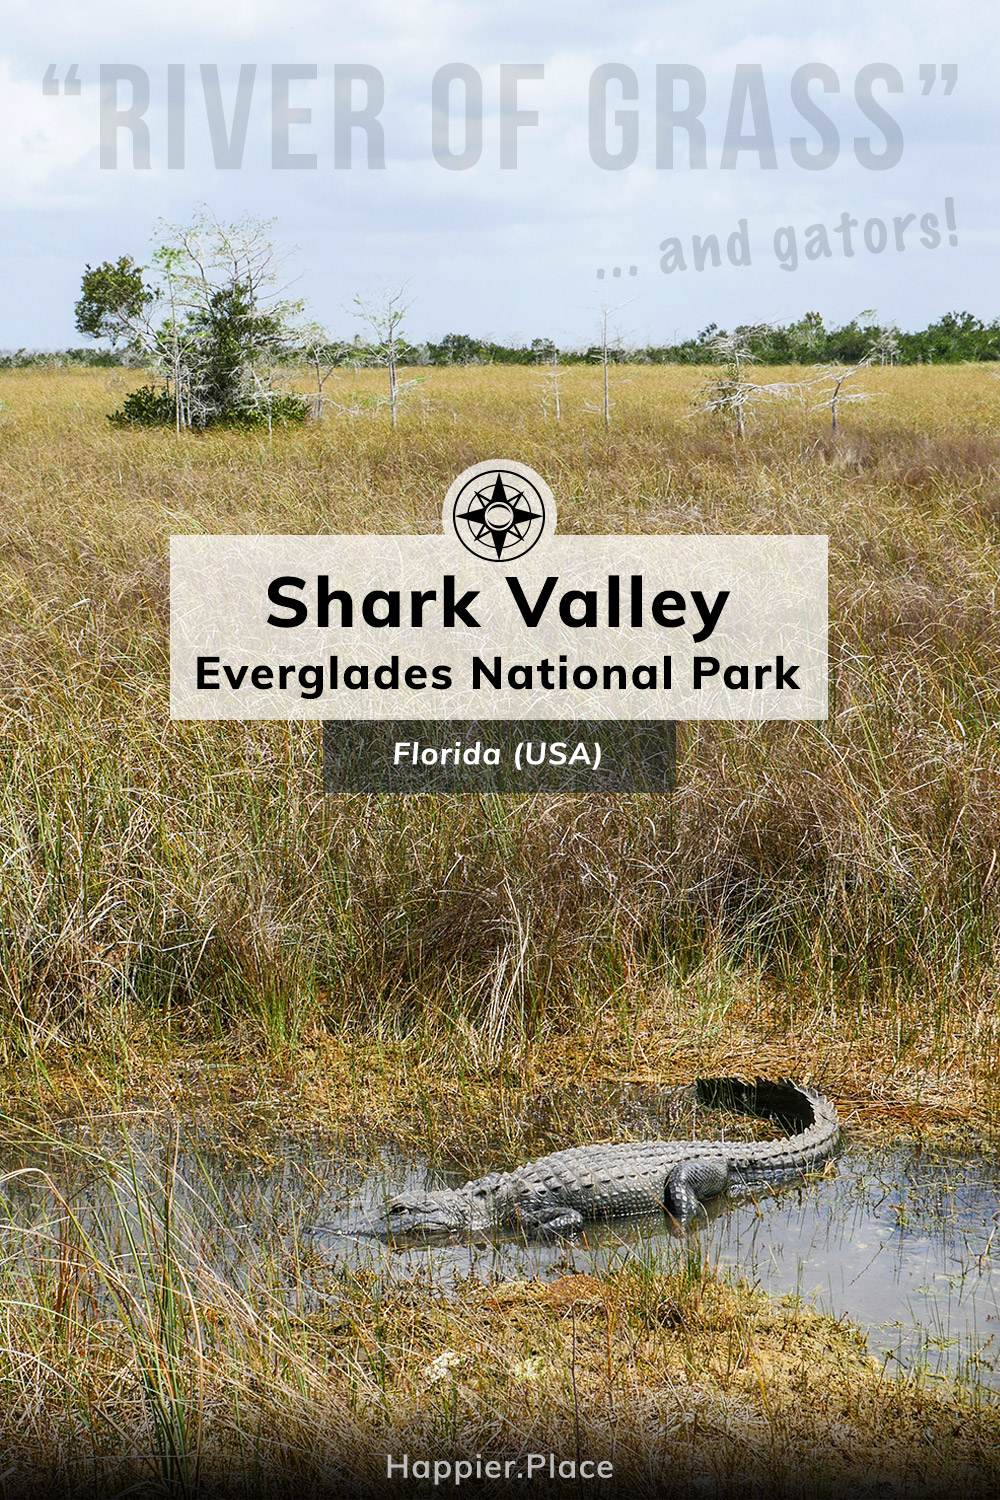 Shark Valley: Close Encounters with Wildlife in Everglades National Park (Florida)